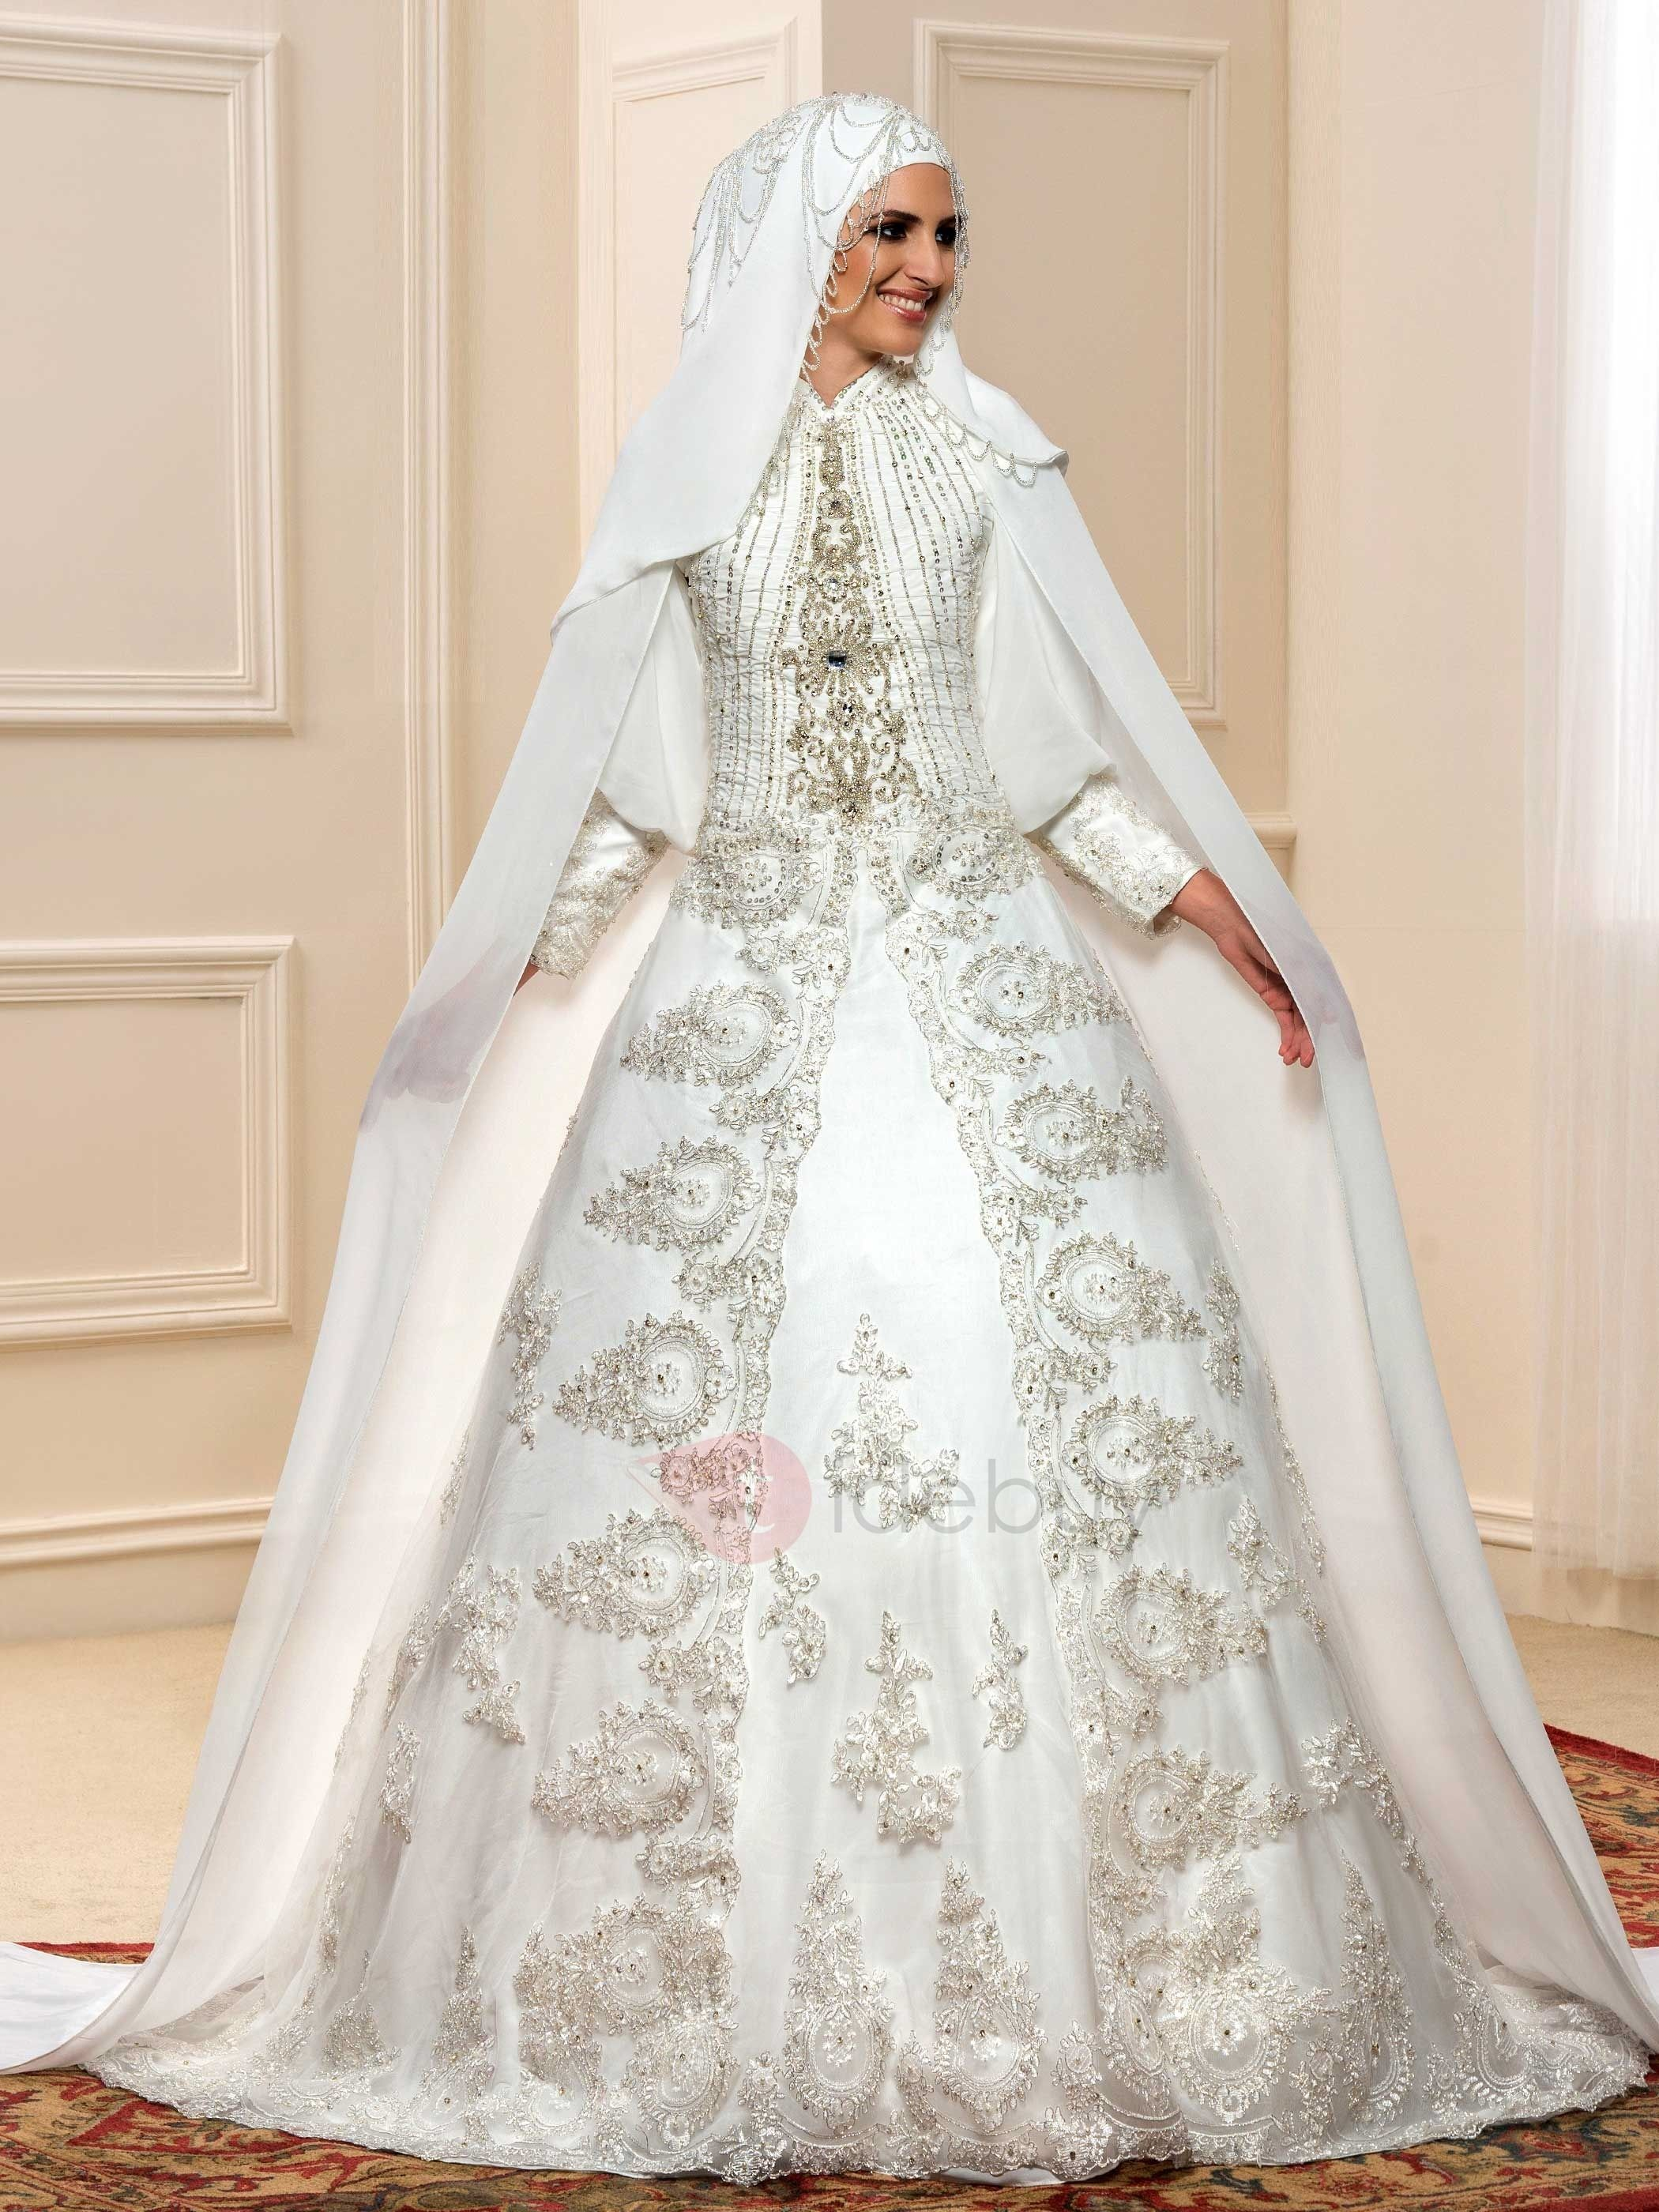 Tidebuy.com Offers High Quality Luxury Beaded Lace High Neck Muslim Wedding  Dress with Sleeves a01d1688b88e